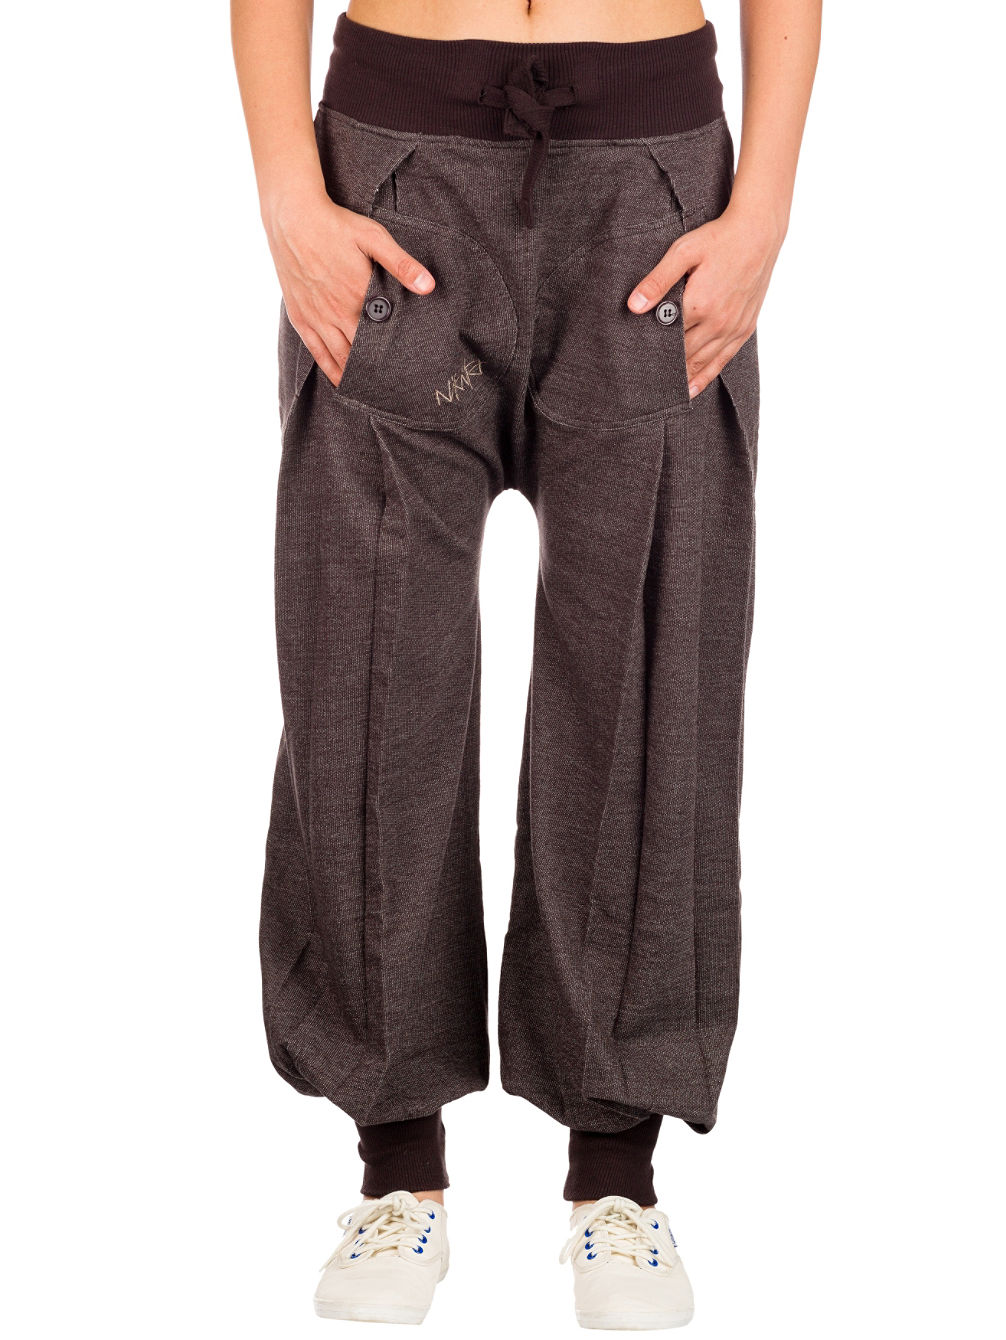 Bastion Pant Women